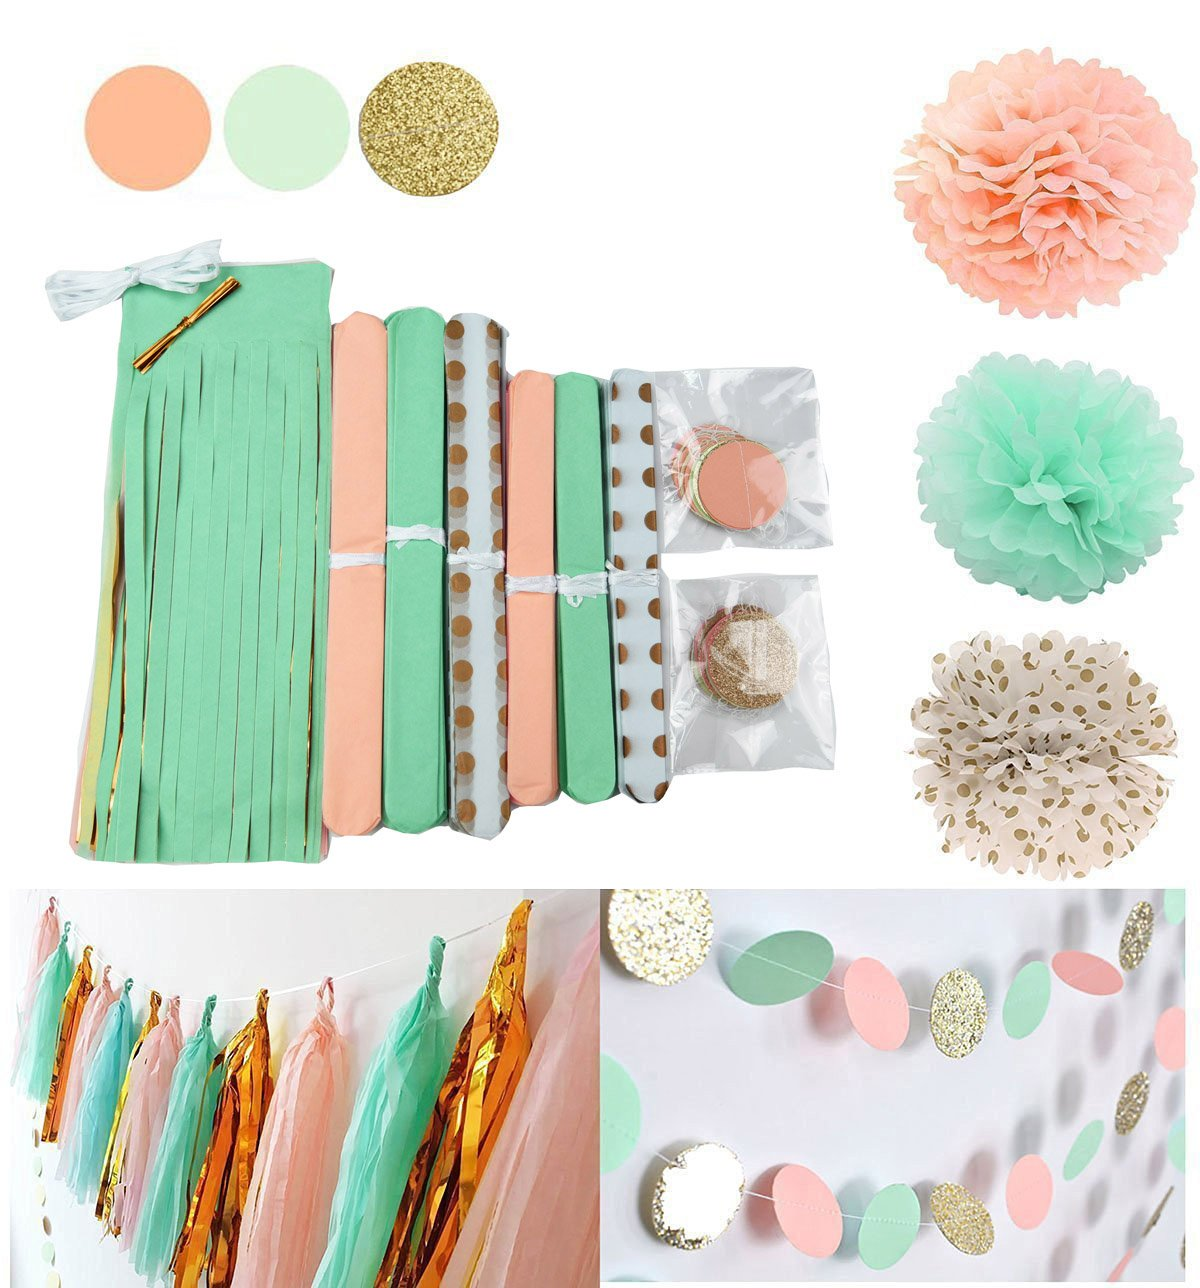 peach tissue paper Online shopping from a great selection at home & kitchen store.